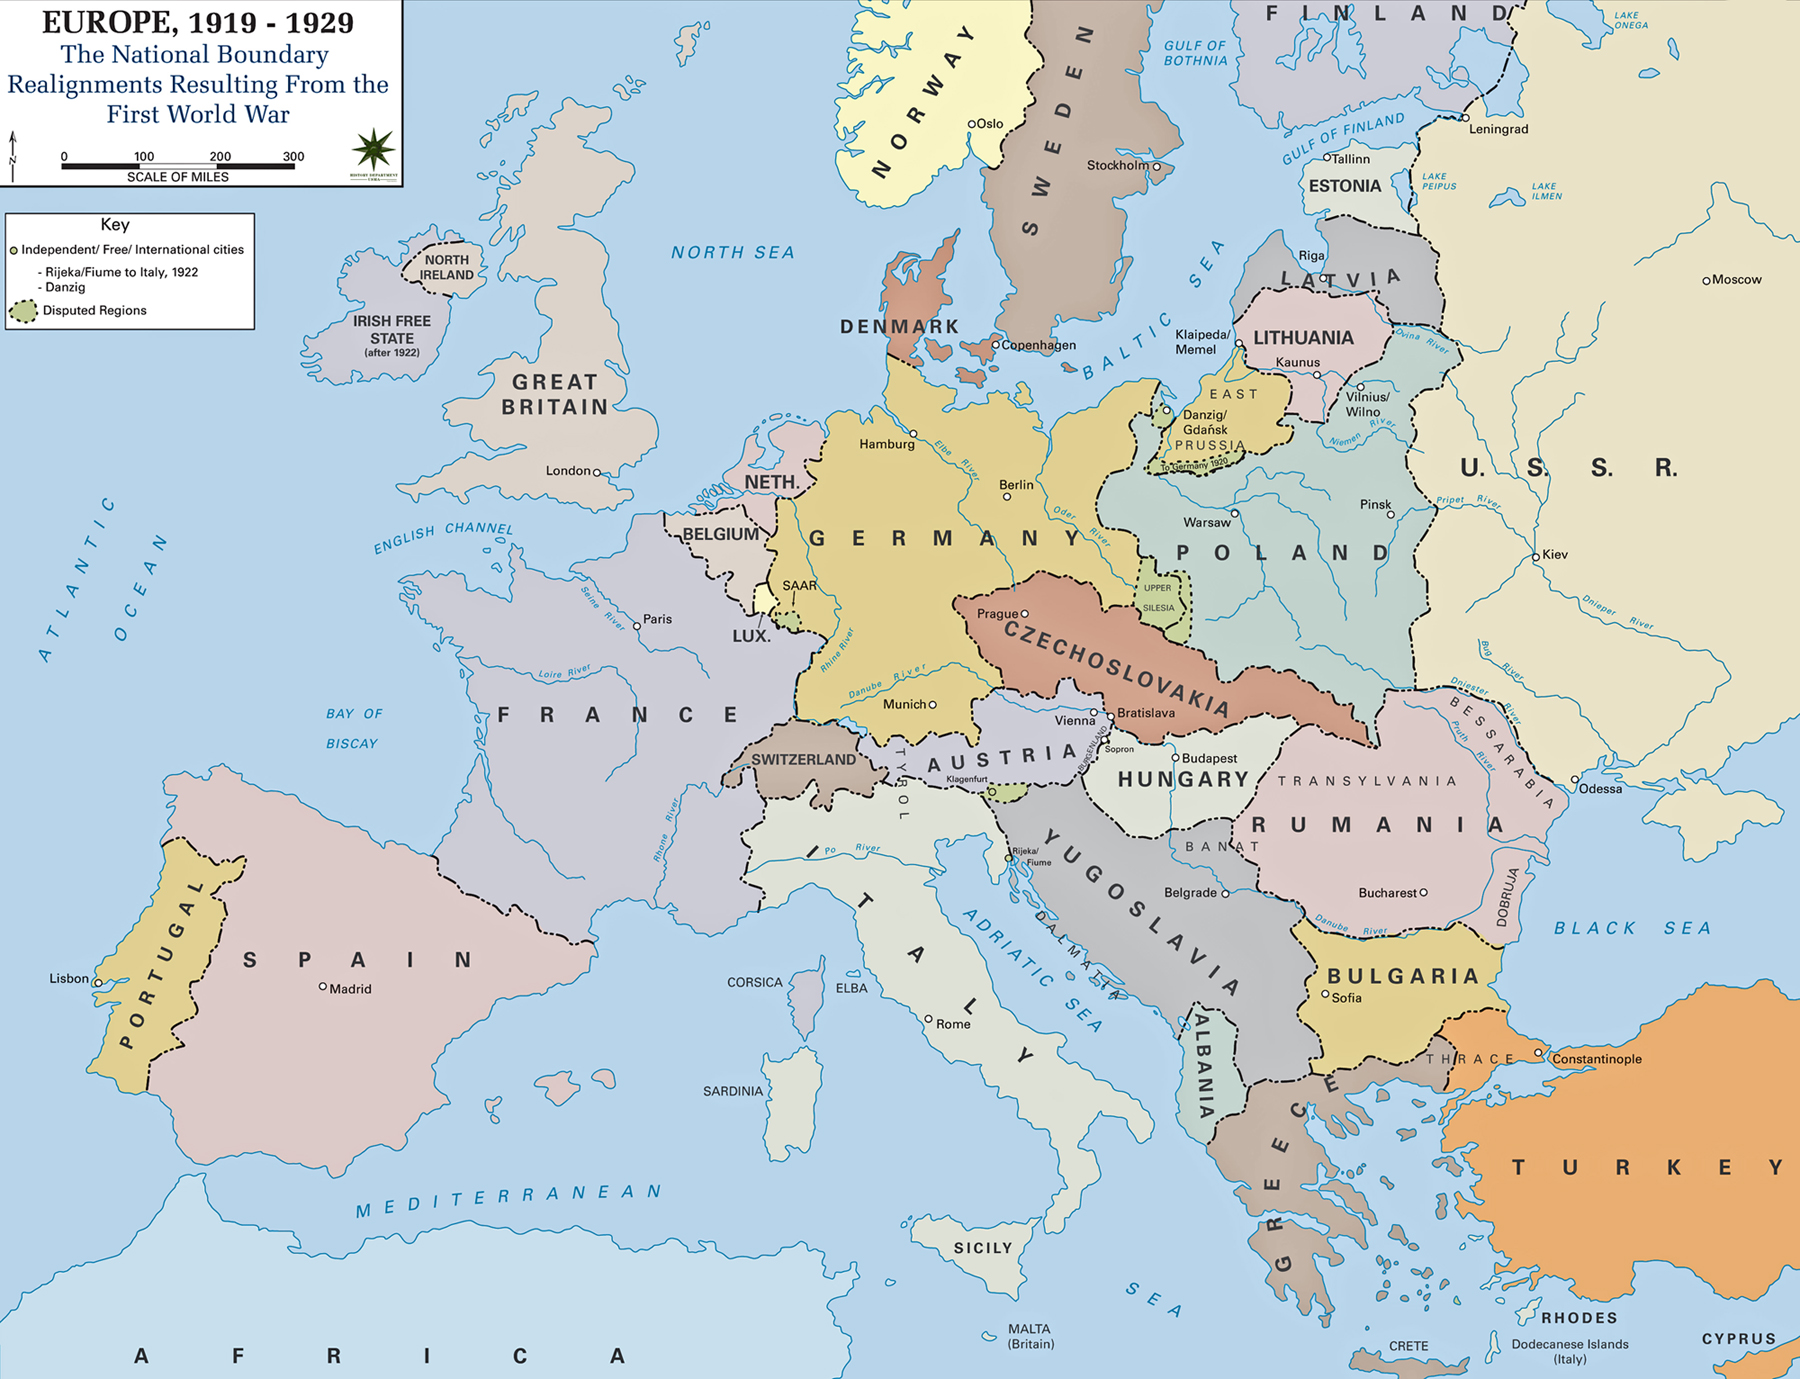 Map of europe in 1919 map of europe 1919 1929 gumiabroncs Image collections